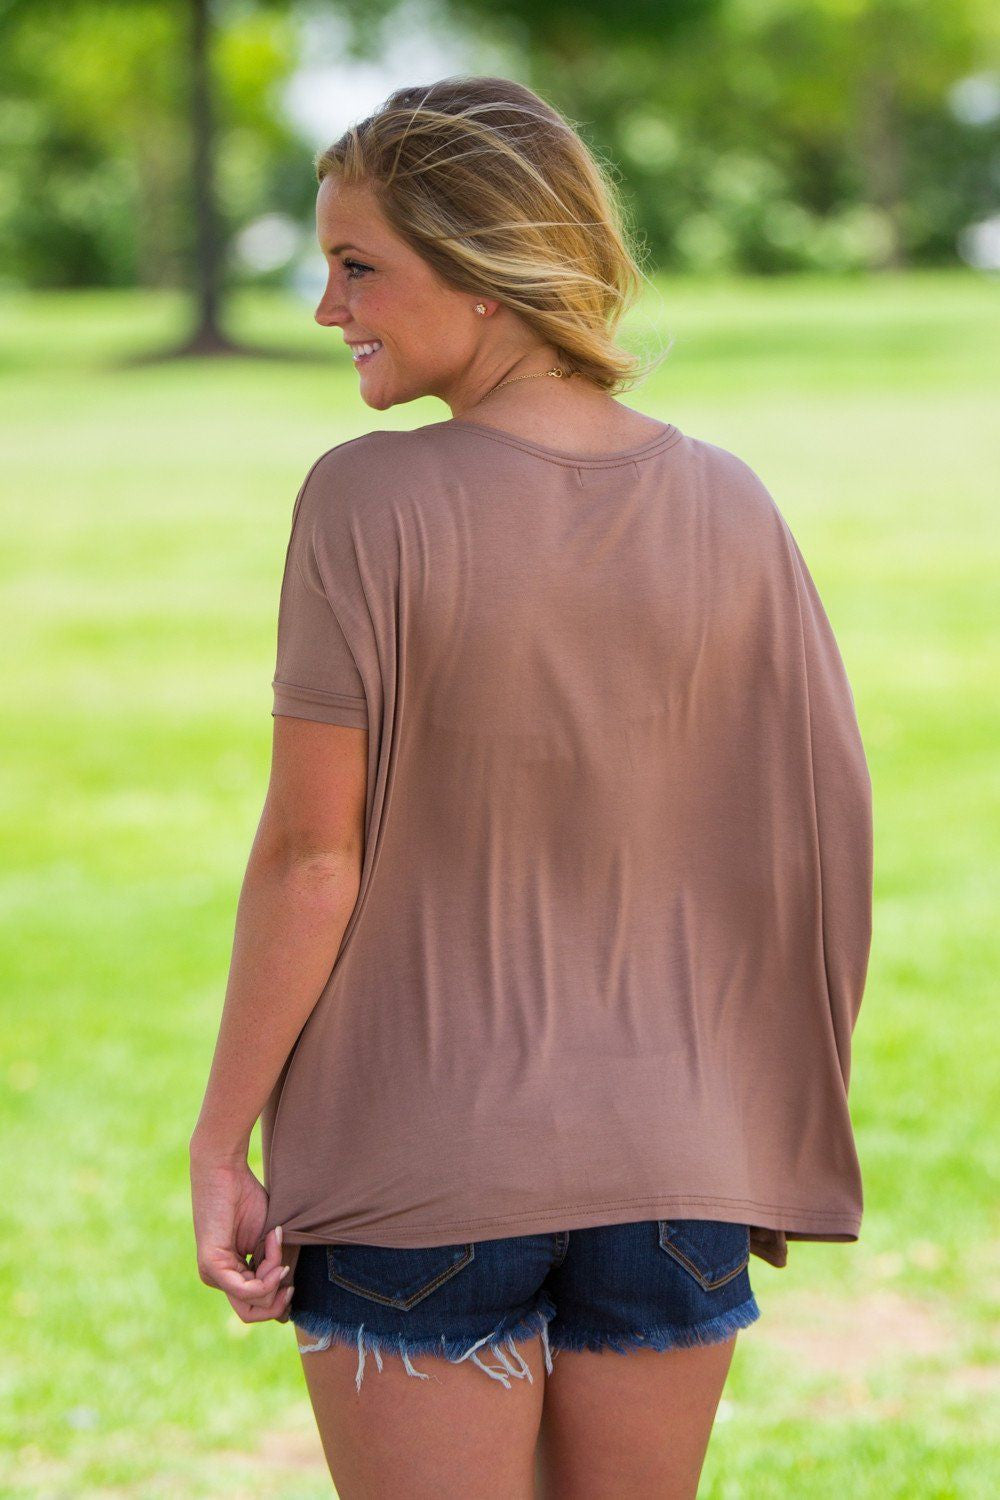 Short Sleeve Piko Top - Mocha - Piko Clothing - 2